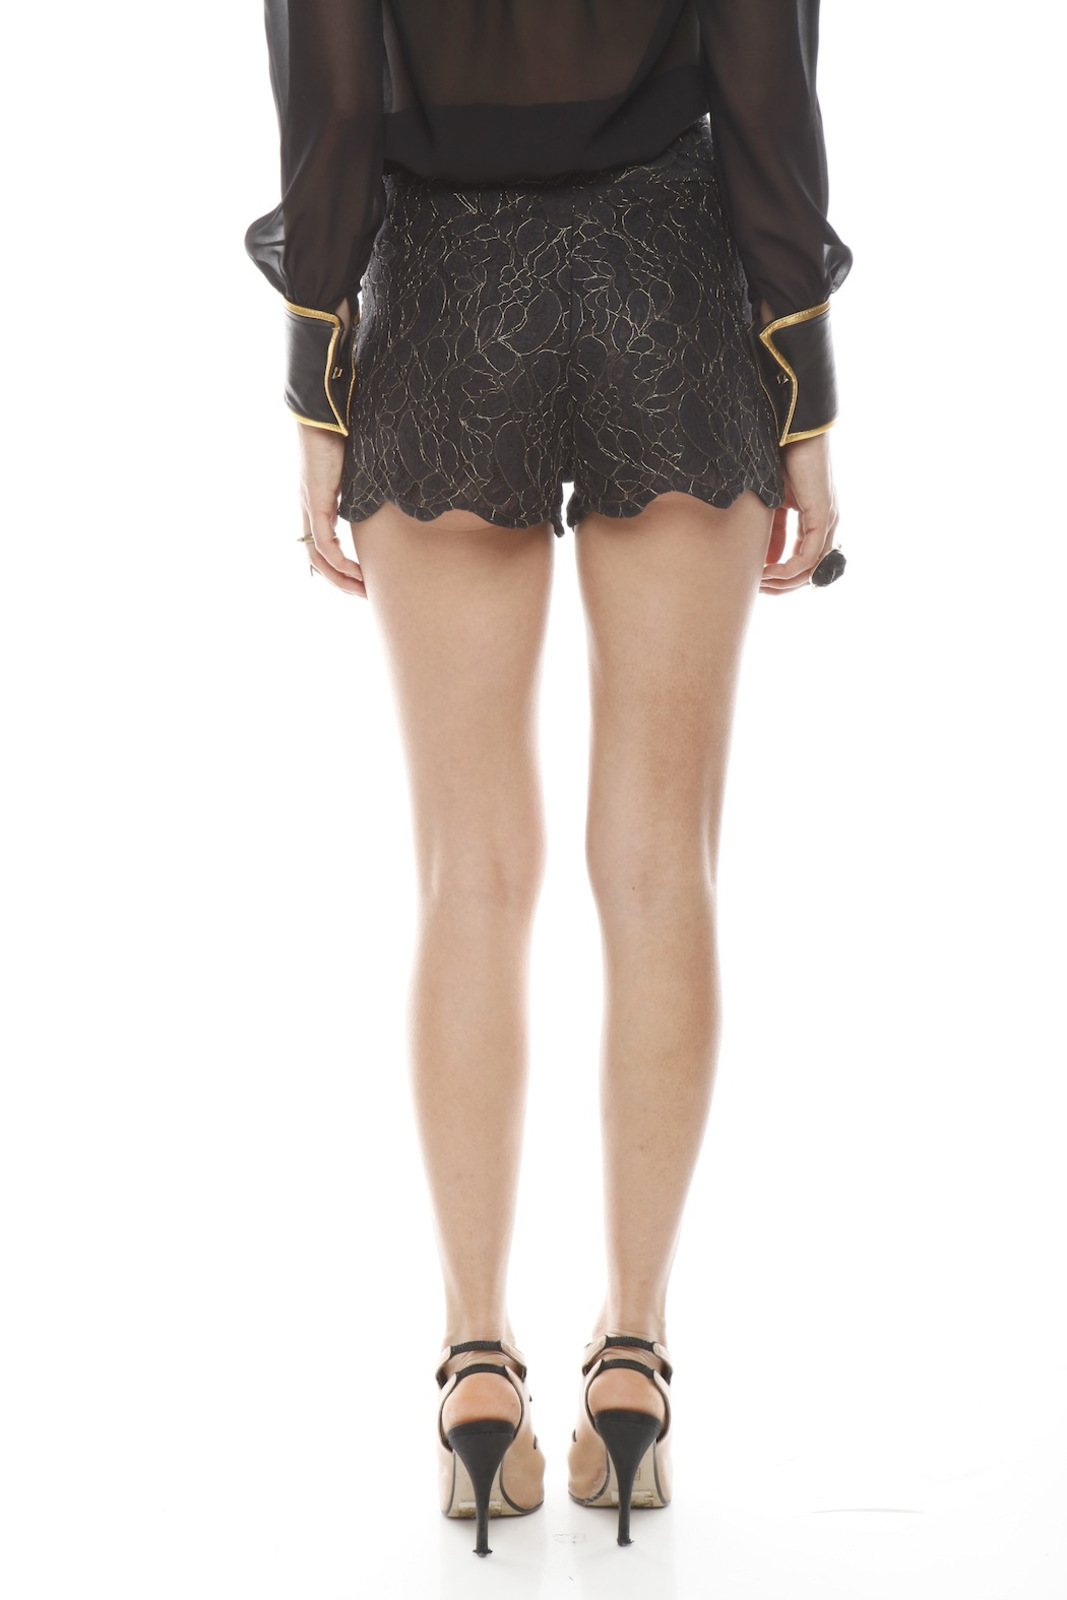 Patricia Del Castillo Lace High-Waist Shorts - Back Cropped Image